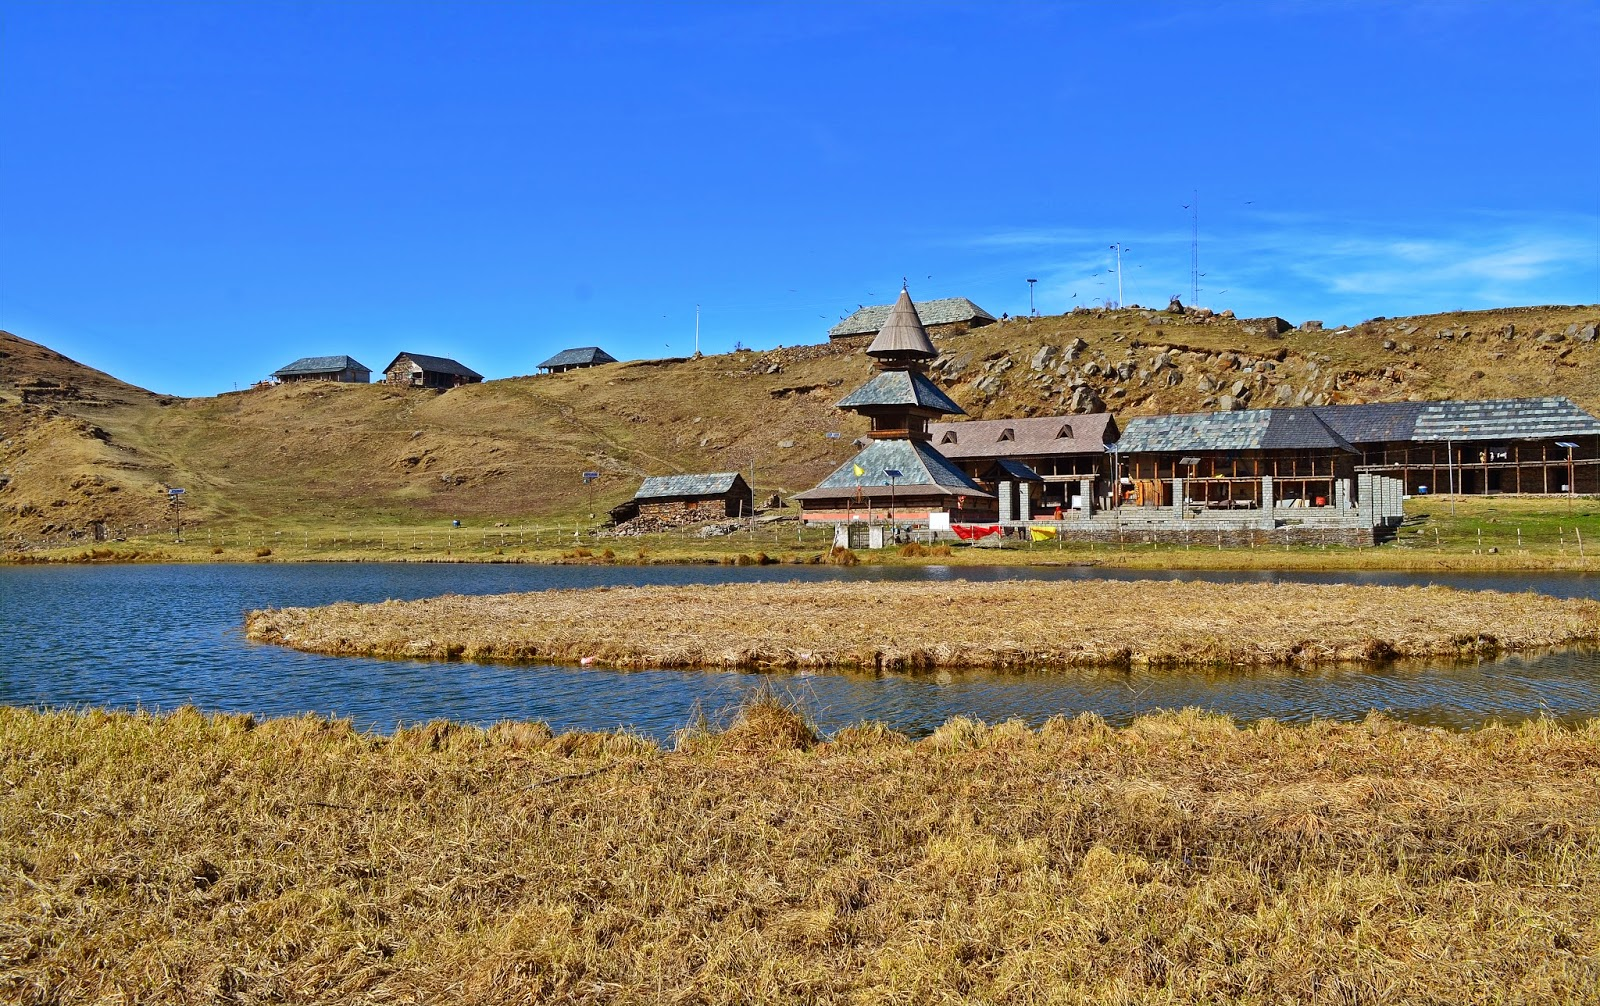 Parashar Rishi Temple, Floating Island, Prashar lake